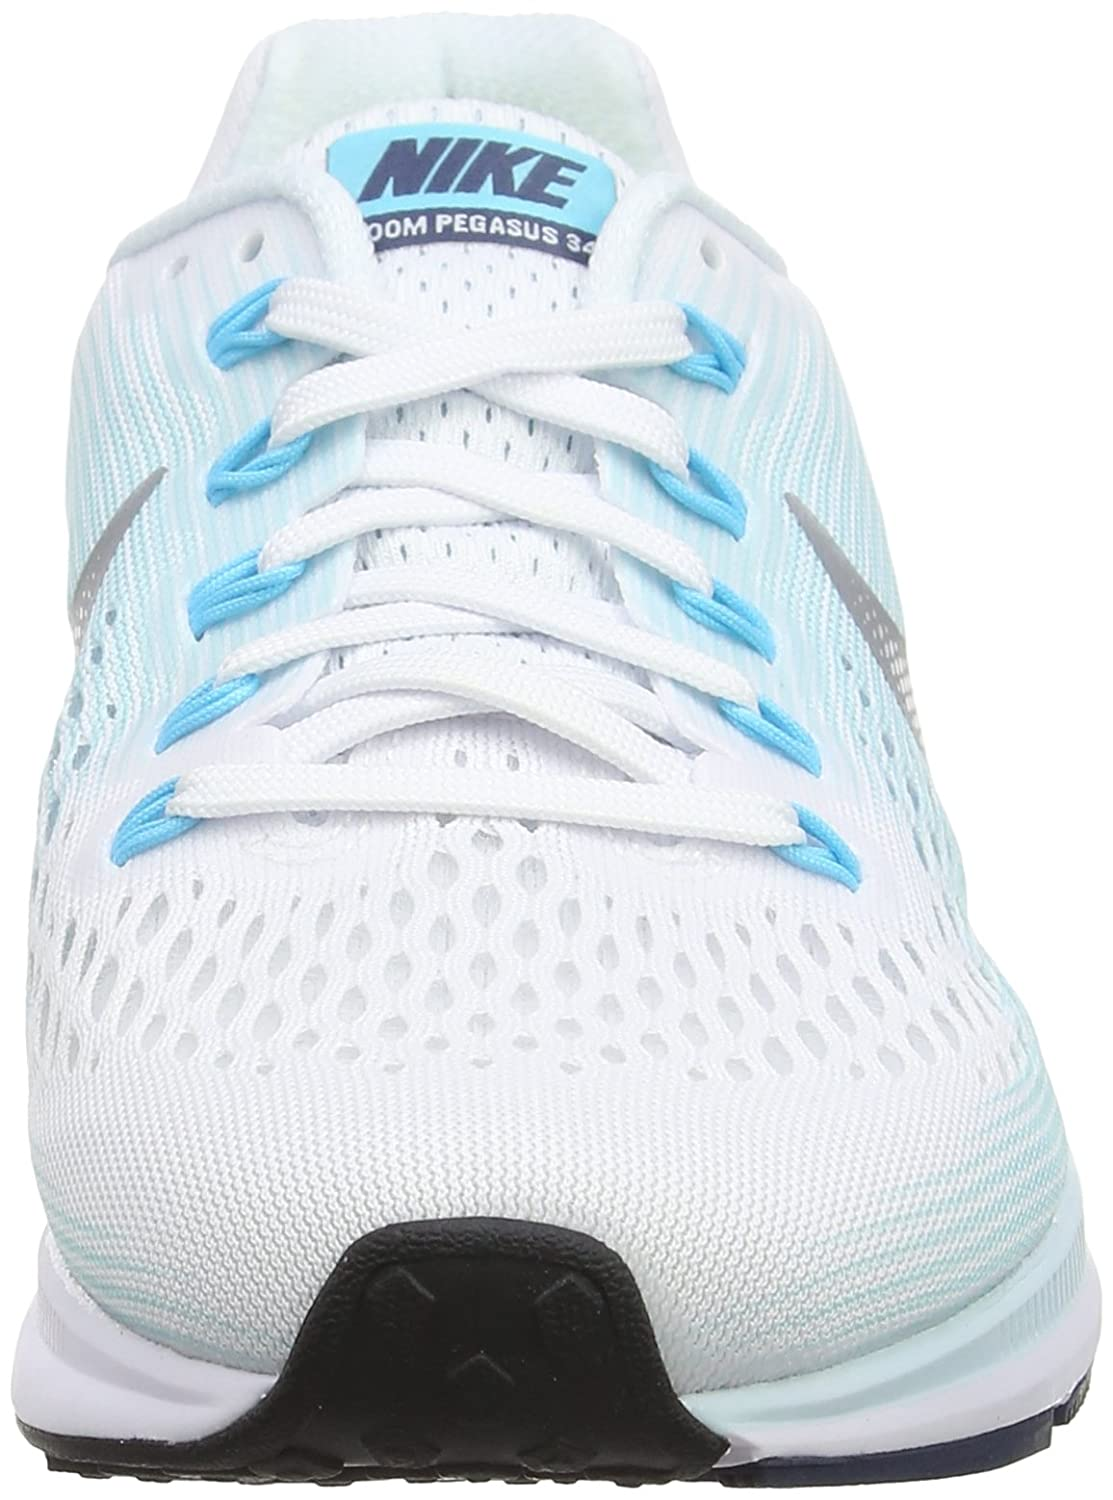 NIKE Women's Air Zoom Pegasus 34 B(M) Running Shoe B00EKWBD2S 7.5 B(M) 34 US|White/Metallic Silver-glacier Blue e536e8